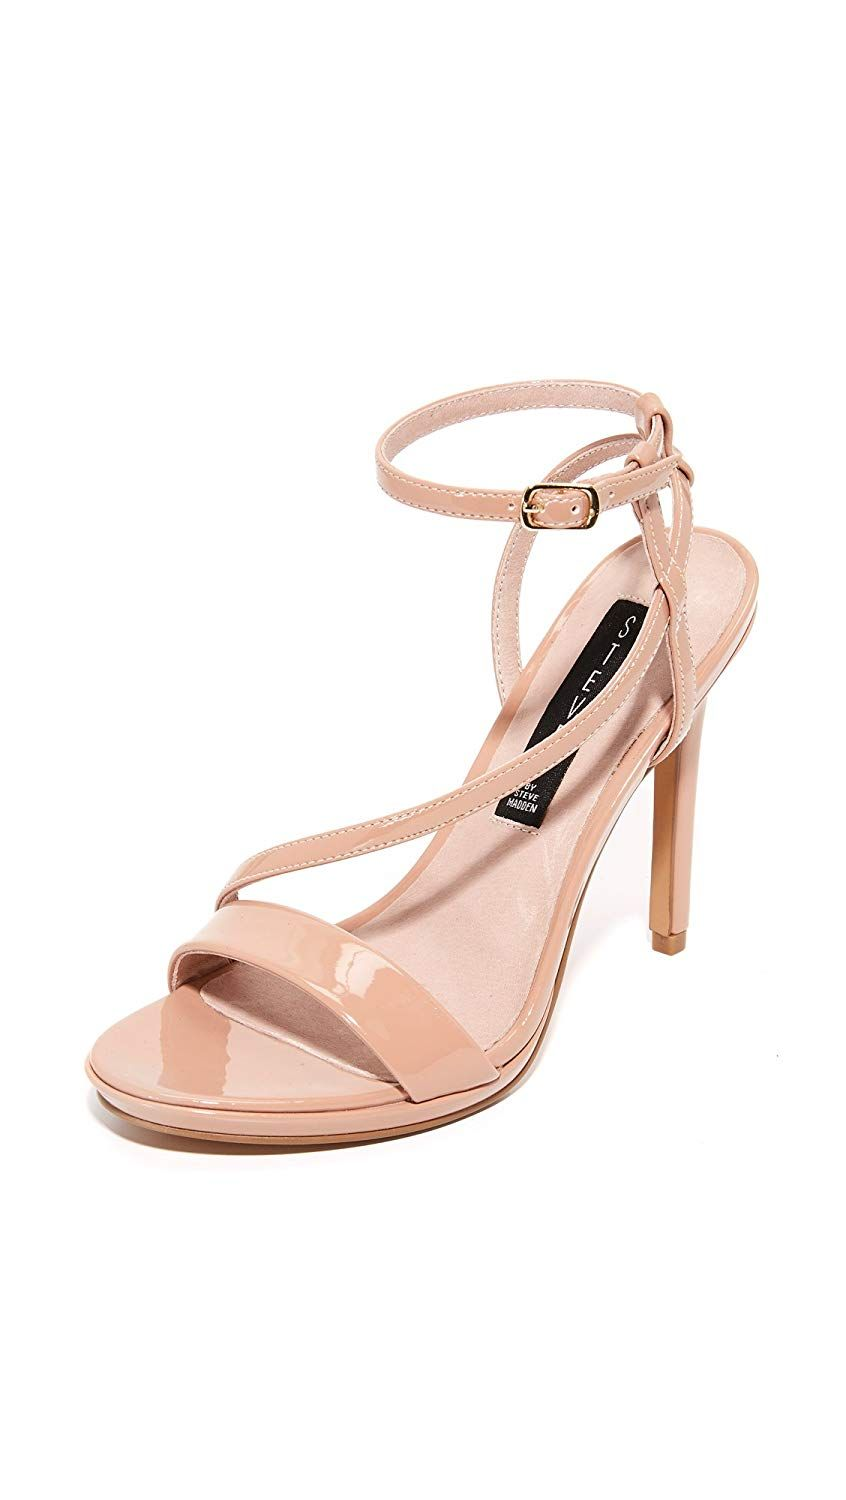 64d09fcff40 STEVEN by Steve Madden Women s Rees Dress Sandal    Wonderful of your  presence to have dropped by to see our picture. (This is our affiliate  link)   ...